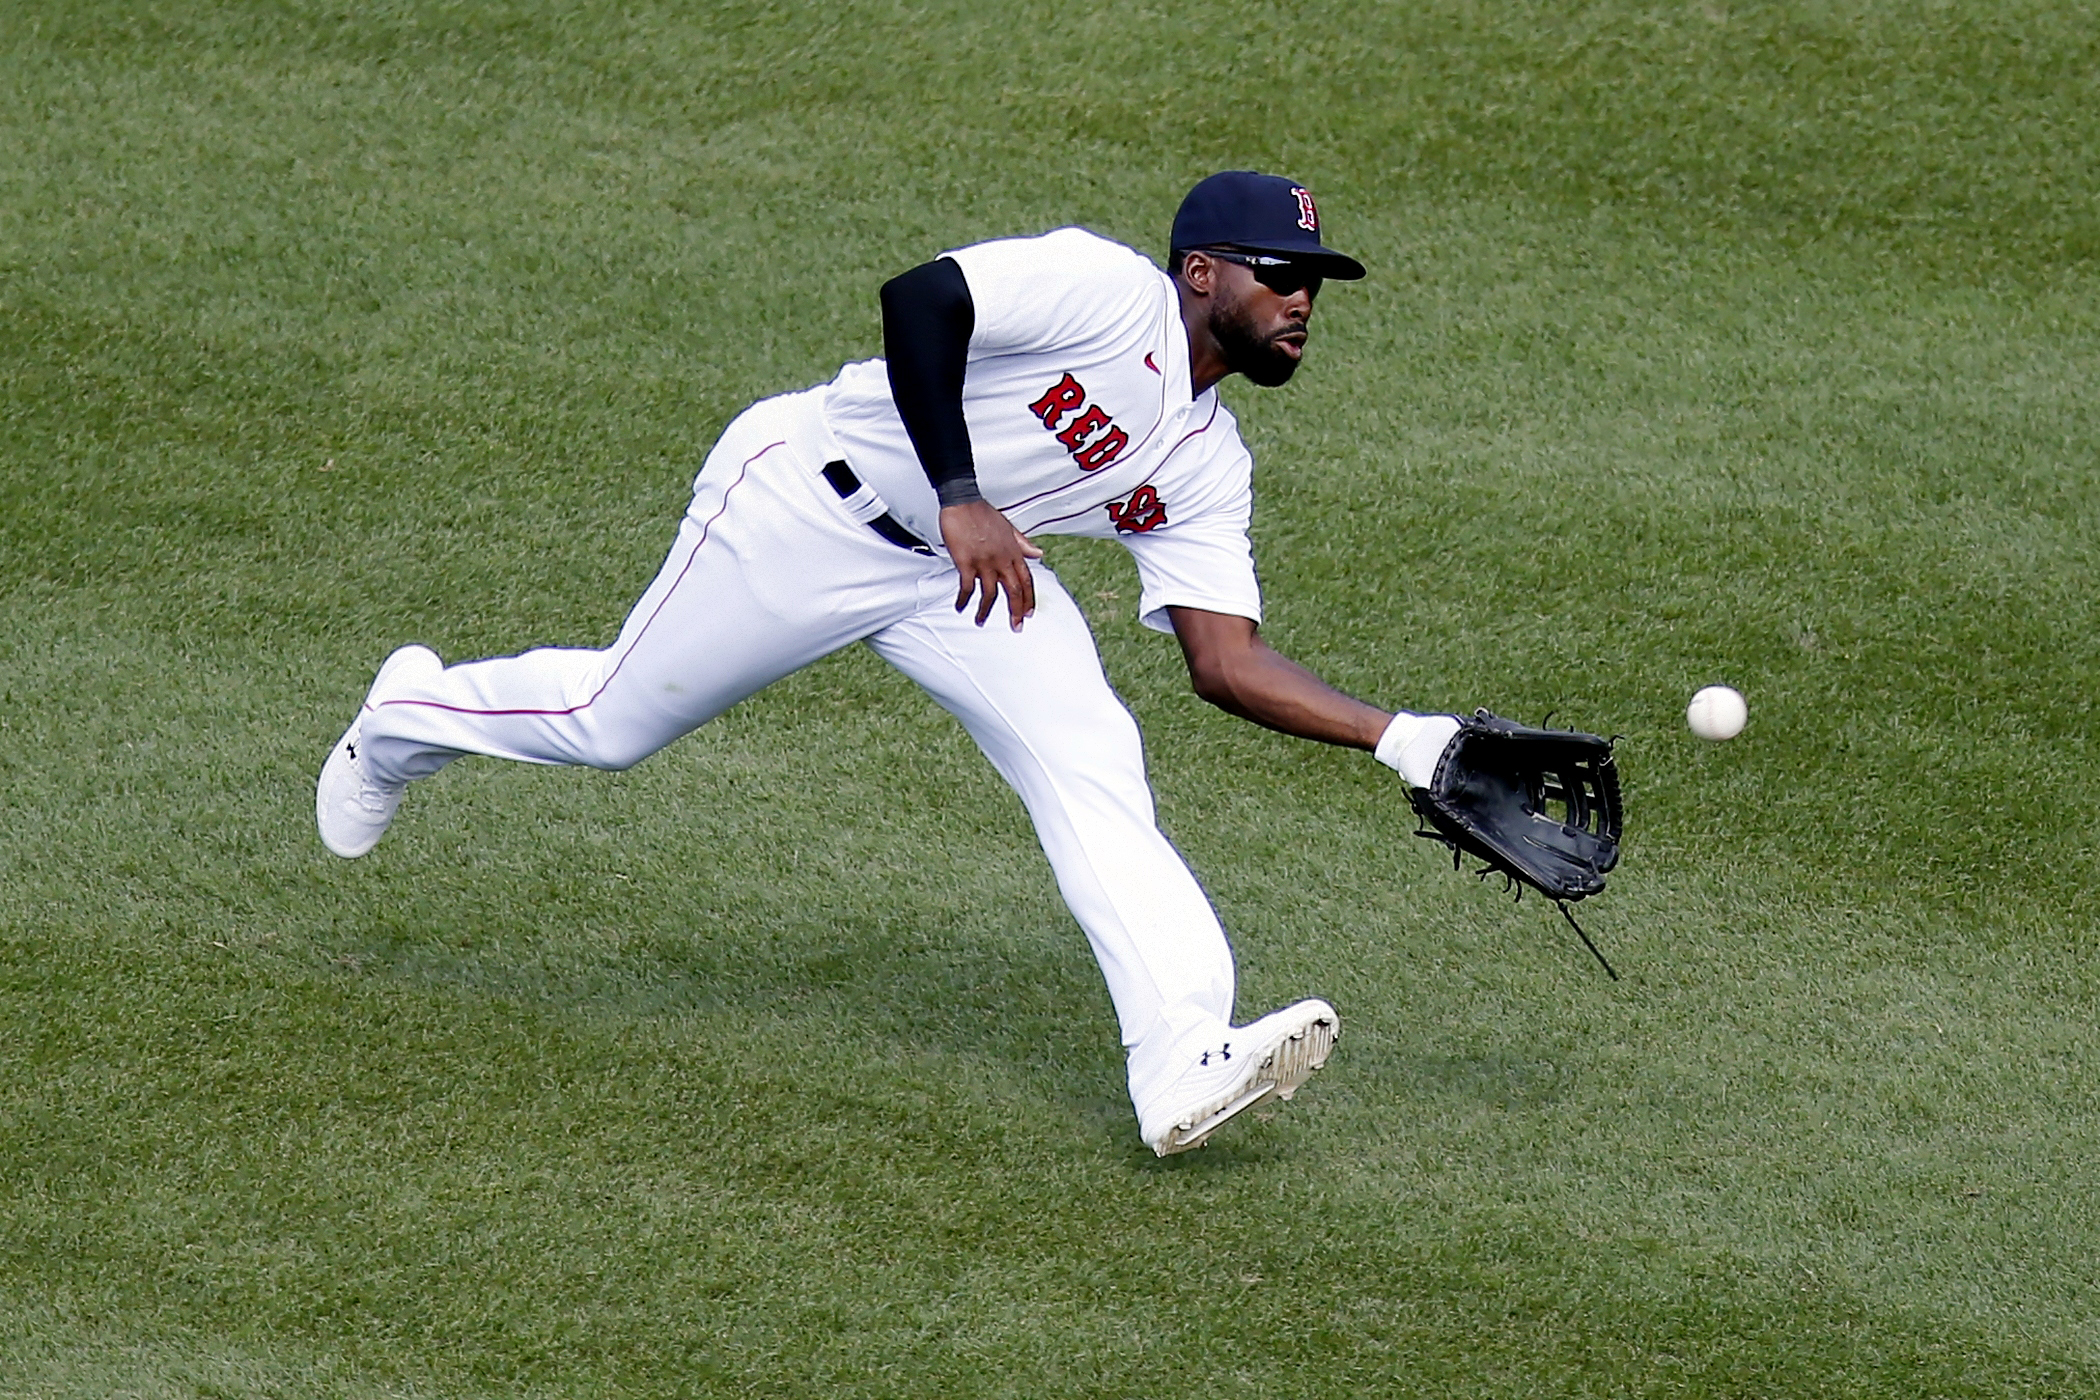 Missing Out on Jackie Bradley Jr. Was a Good Thing for the Red Sox